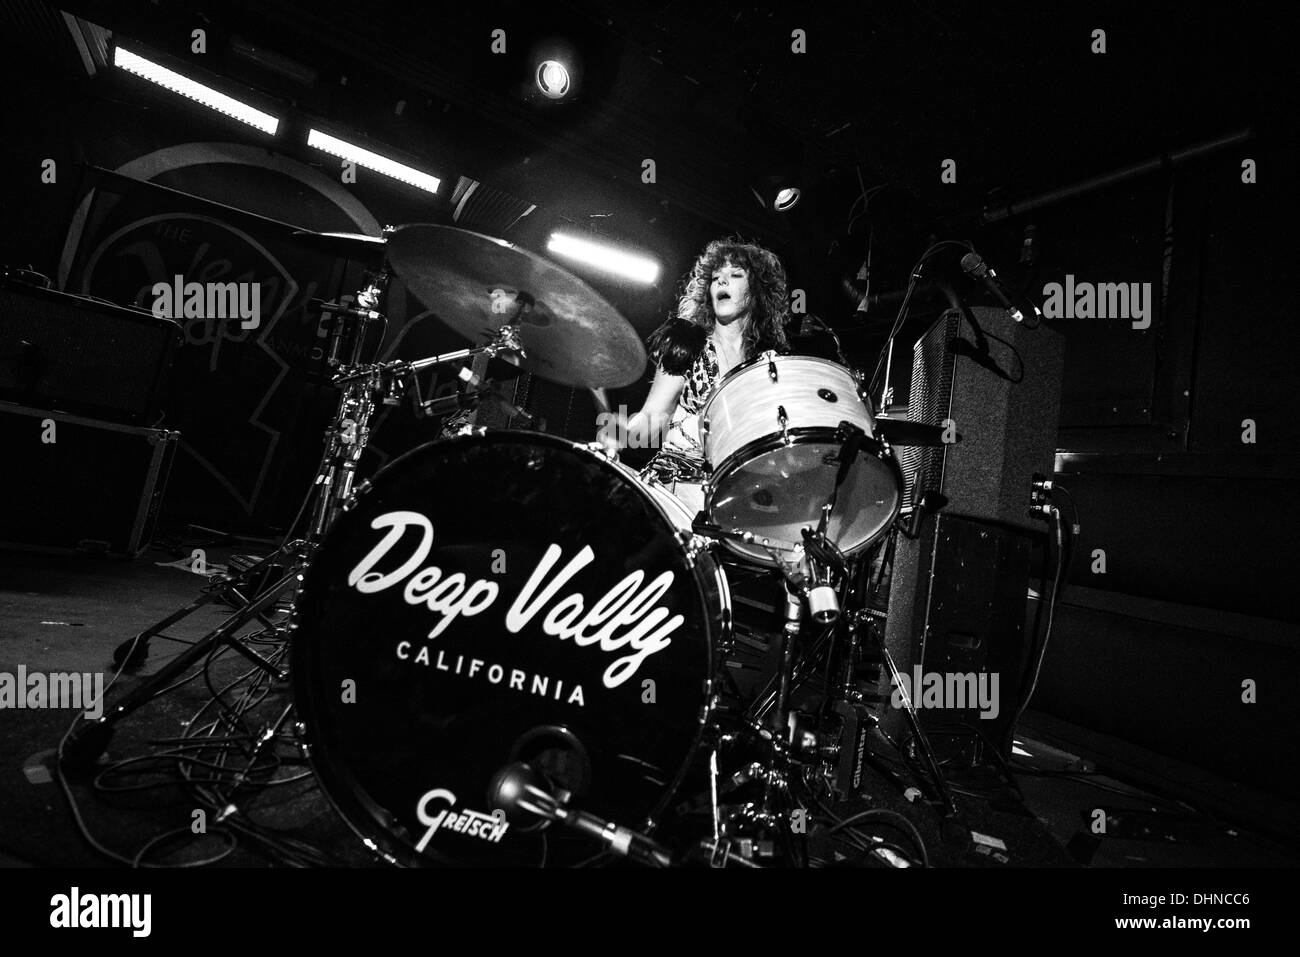 Glasgow, Scotland, UK. 12th November 2013. Julie Edwards of Deap Vally performs at Oran Mor in Glasgow, Scotland, UNITED KINGDOM - NOVEMBER 12: 2013 © Sam Kovak/Alamy Live News - Stock Image